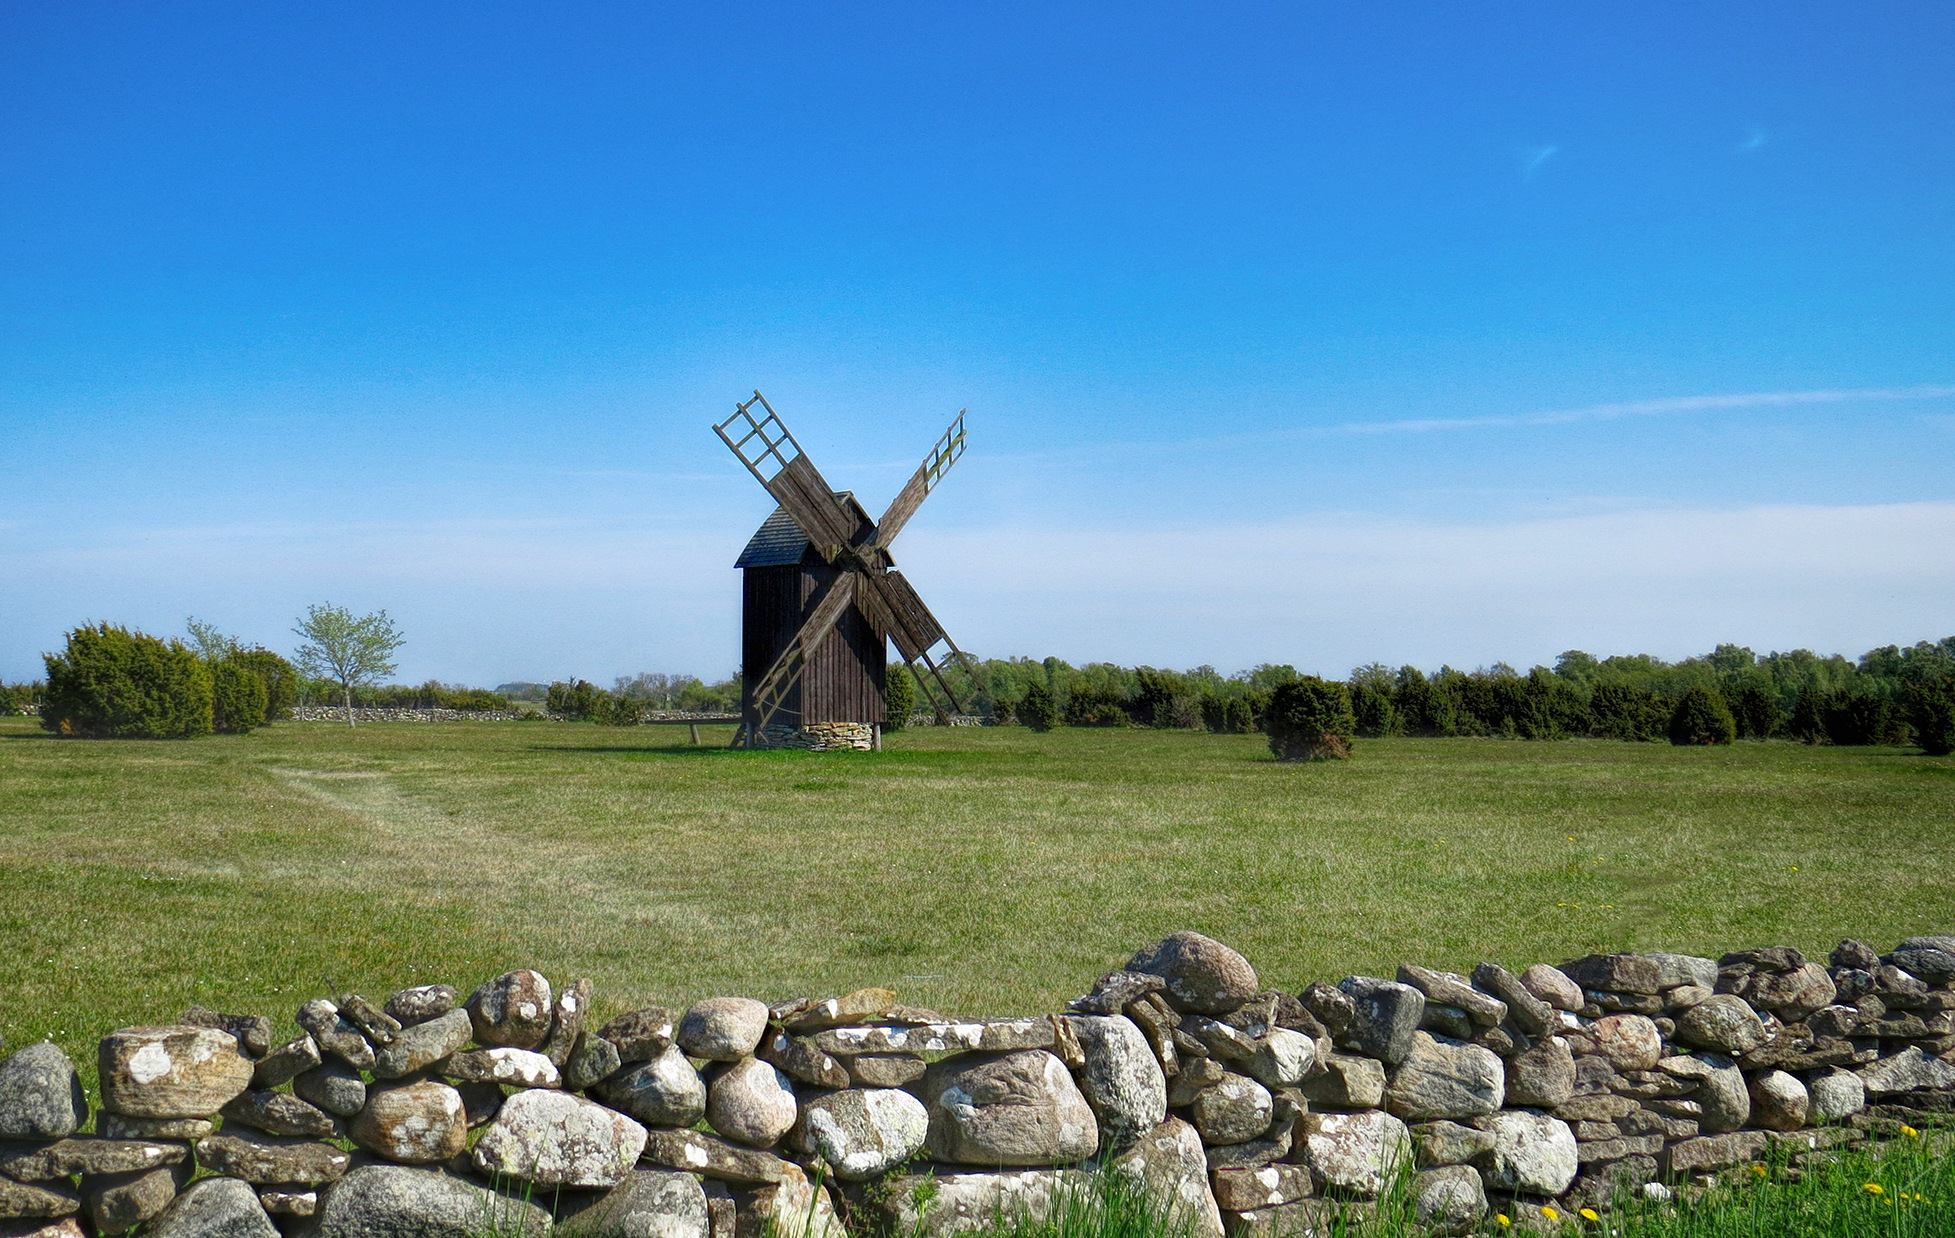 The old Windmill by susanne.m.andersson.92